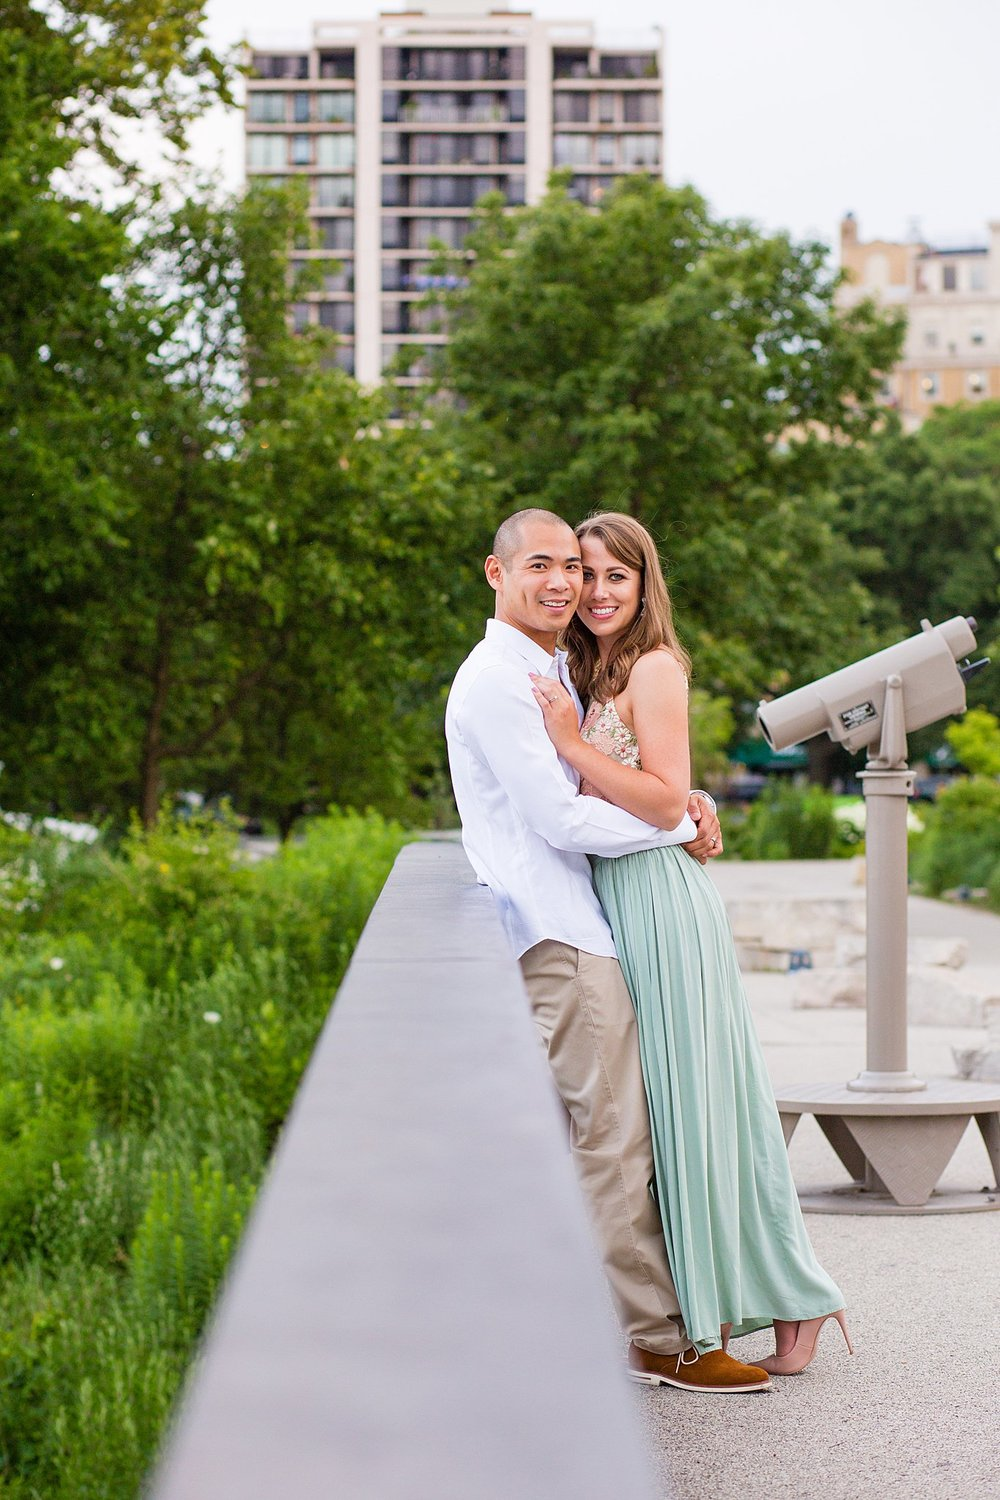 Chicago-Engagement-Lily-Pool-Lincoln-Park-Severin-WeddingsPRINT-Morgana-Keith-July2017-SEP_9407 copy.jpg